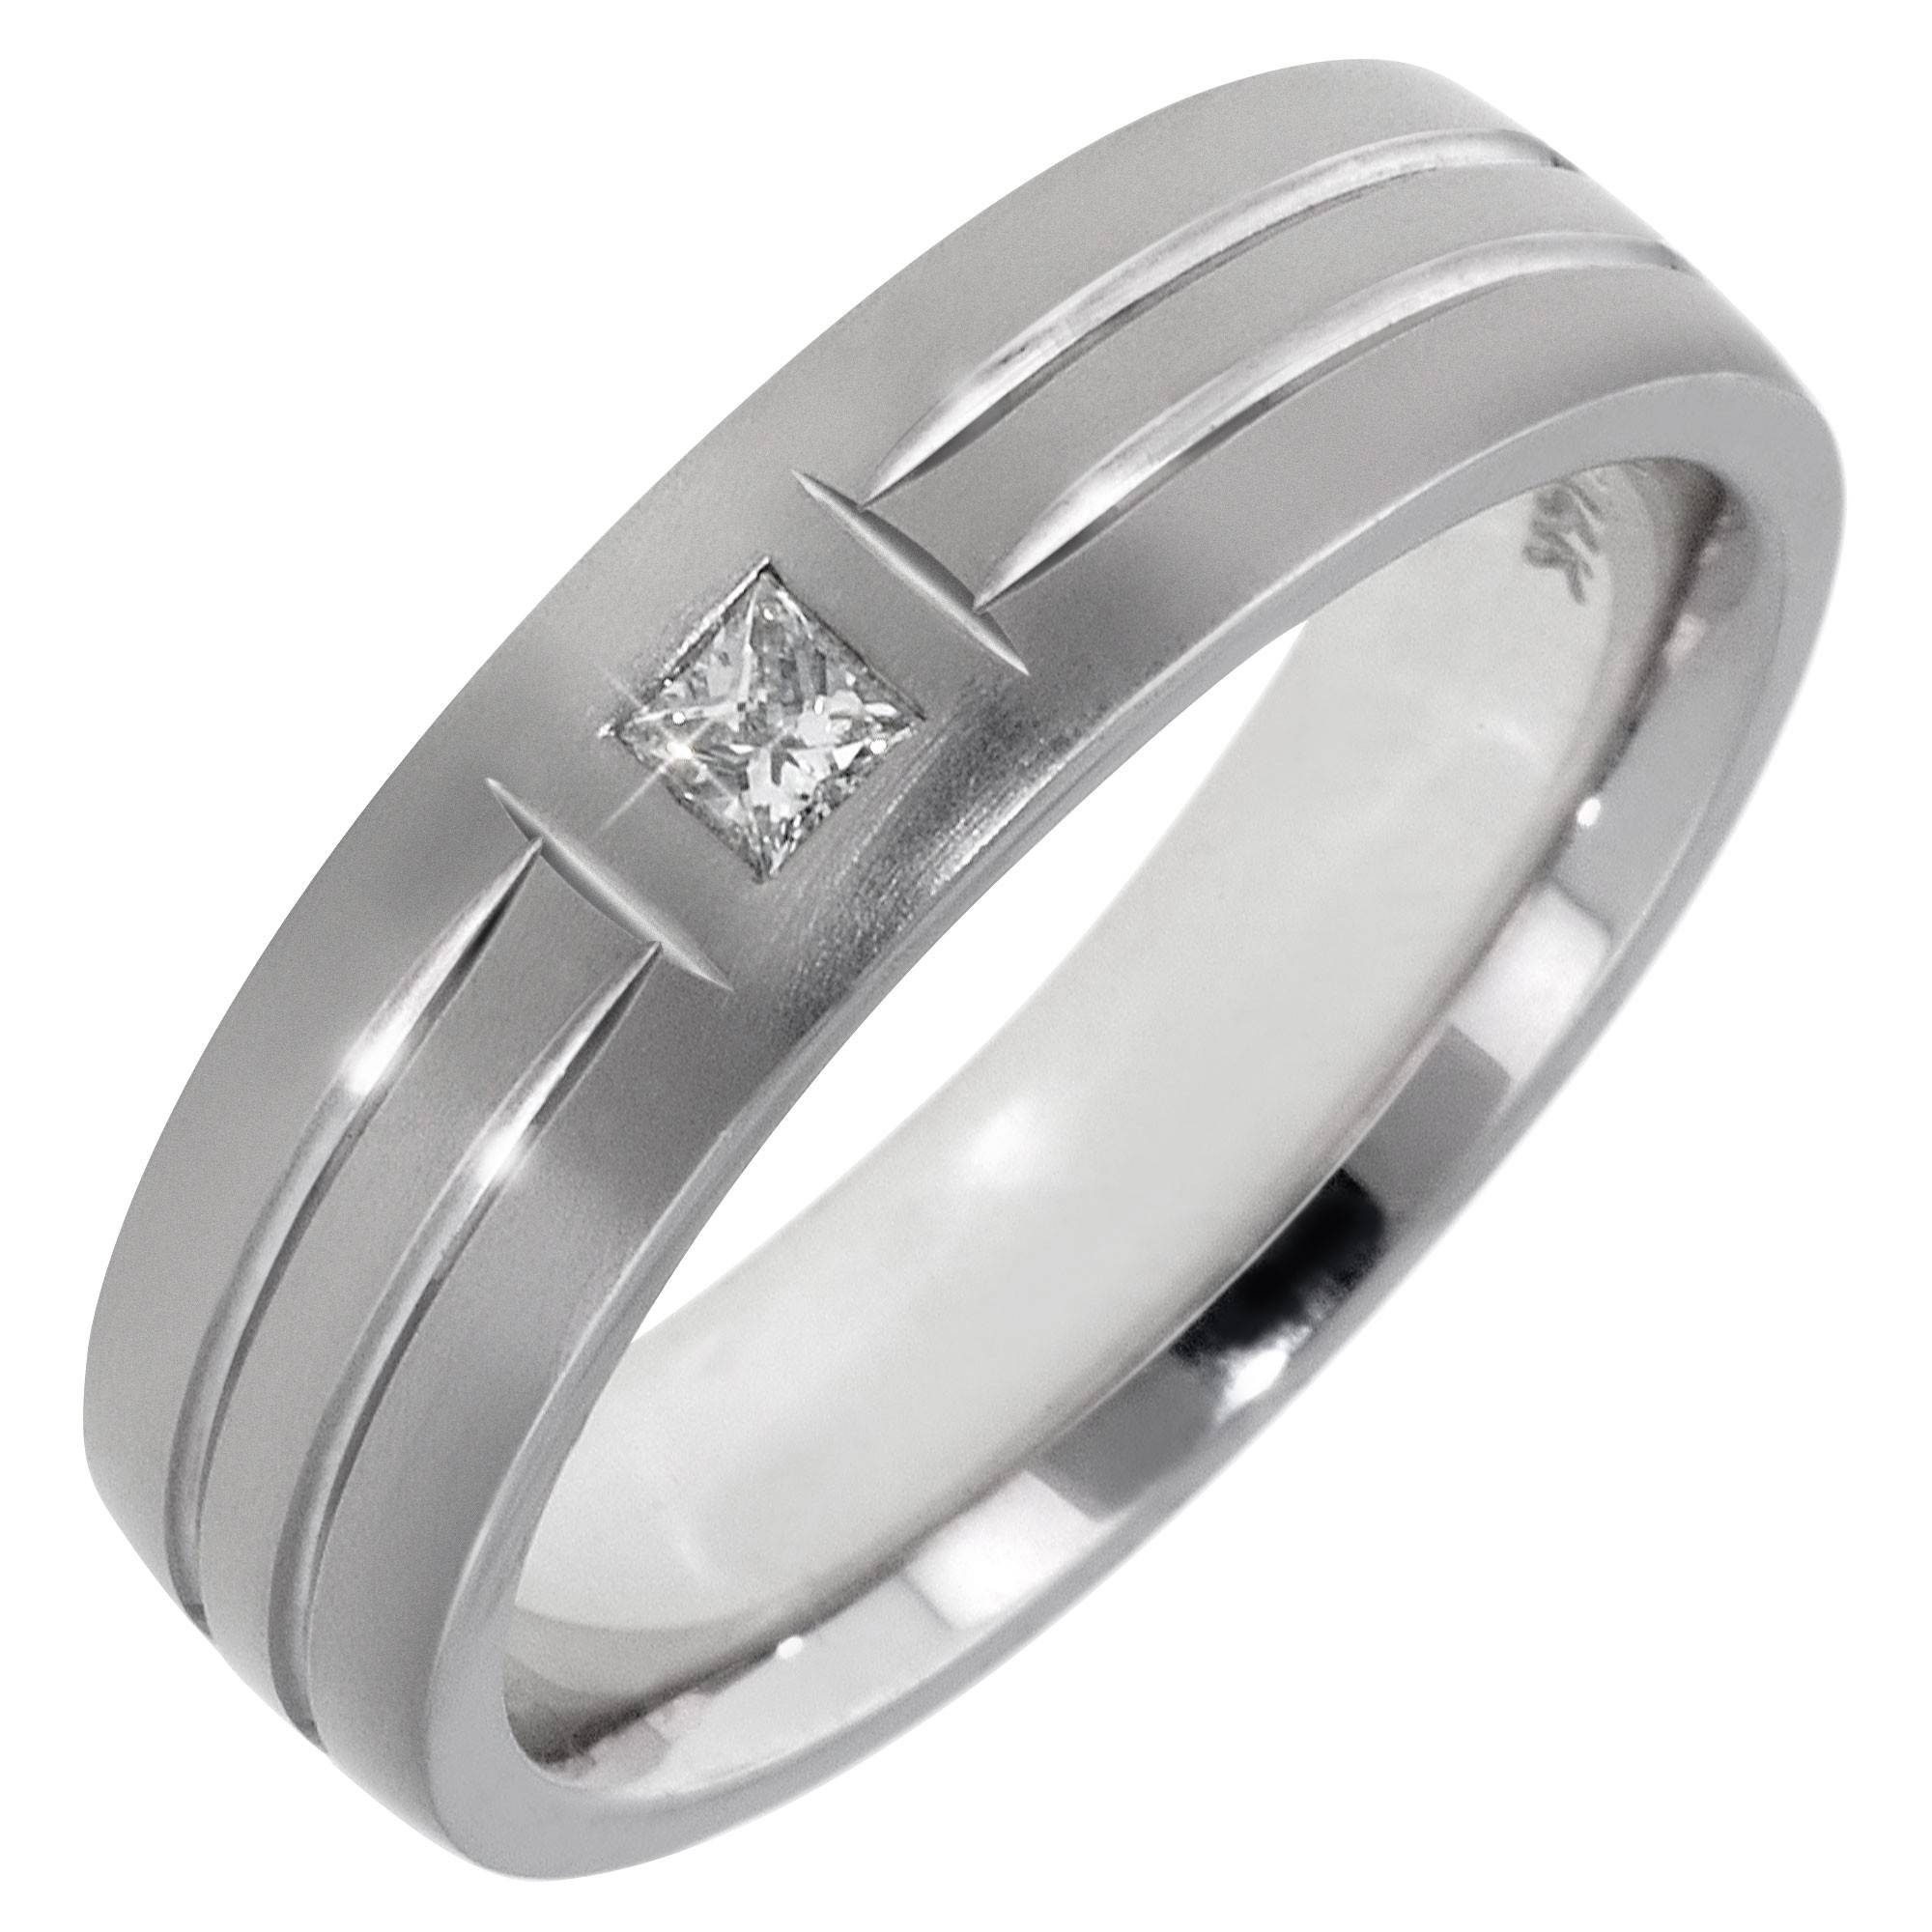 Square Cut Diamond Mens Wedding Band In 14Kt White Gold (1/10Ct Tw) Throughout Square Mens Wedding Rings (View 12 of 15)